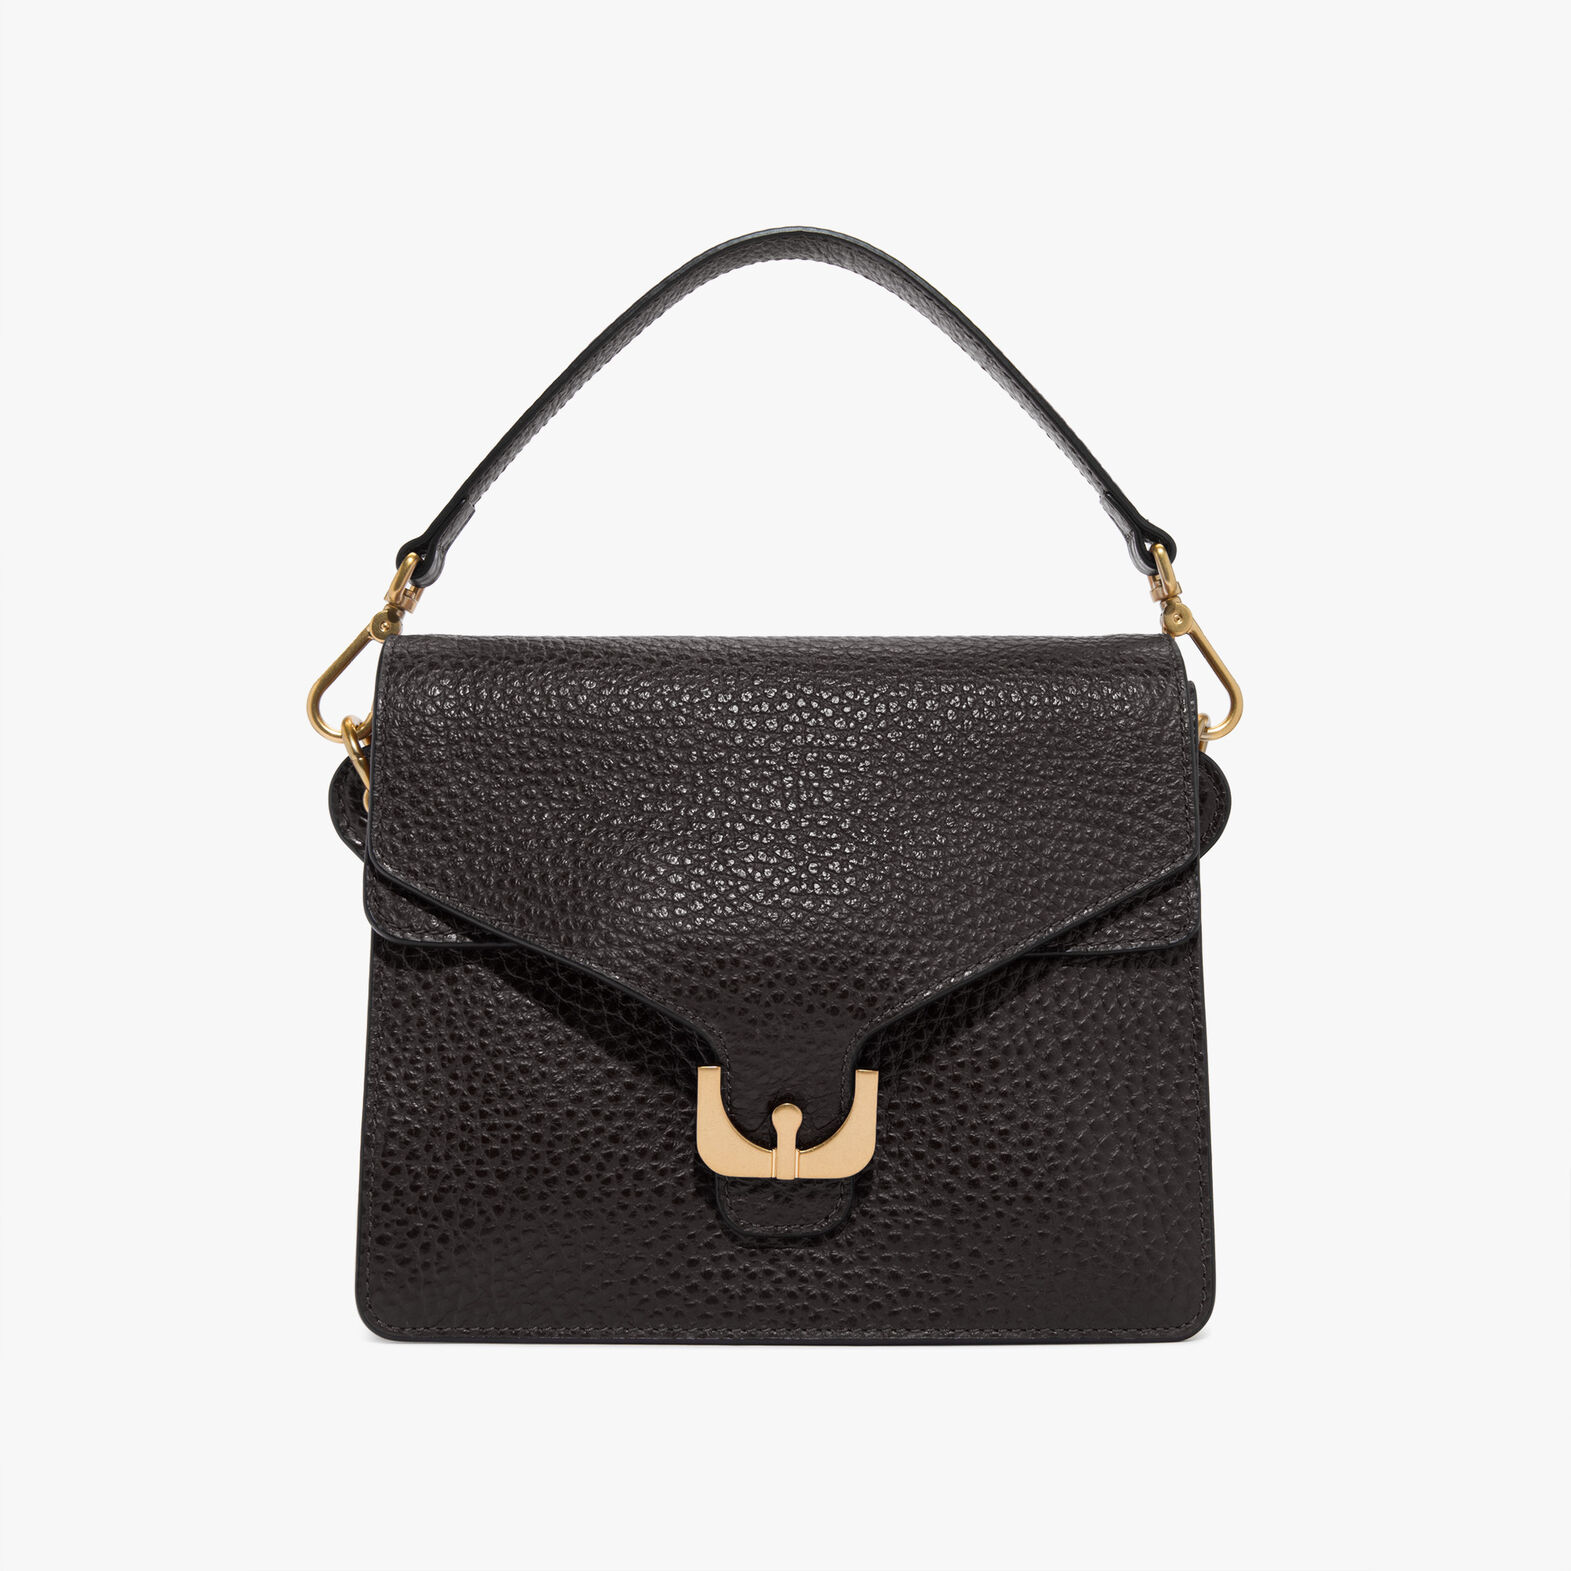 Coccinelle Ambrine leather bag with a single strap